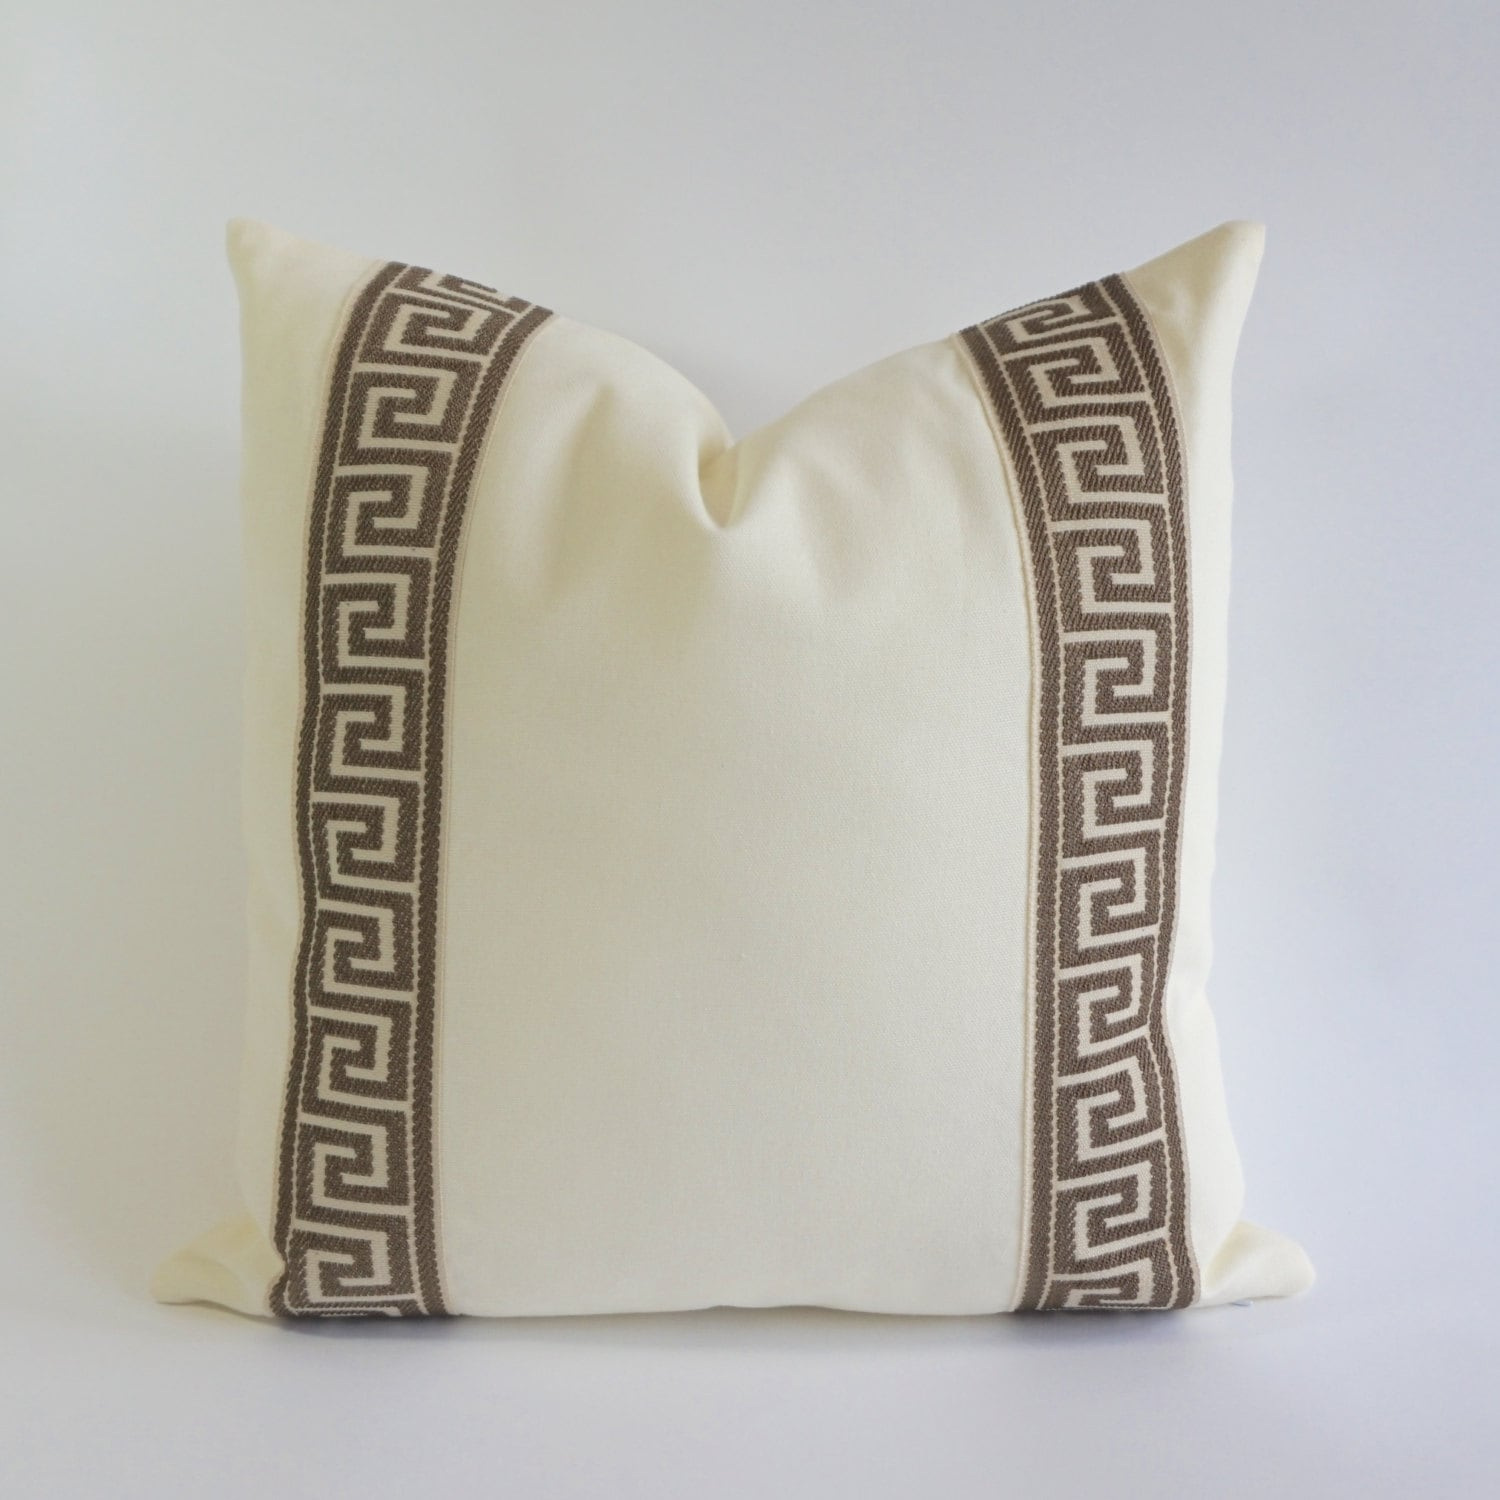 Greek Key Decorative Pillows Part - 25: Decorative Pillow Cover Cotton Off White Cotton Canvas With Light Brown Greek  Key Ribbon Border - 16x16 To 26x26 -4 Different Color Choices